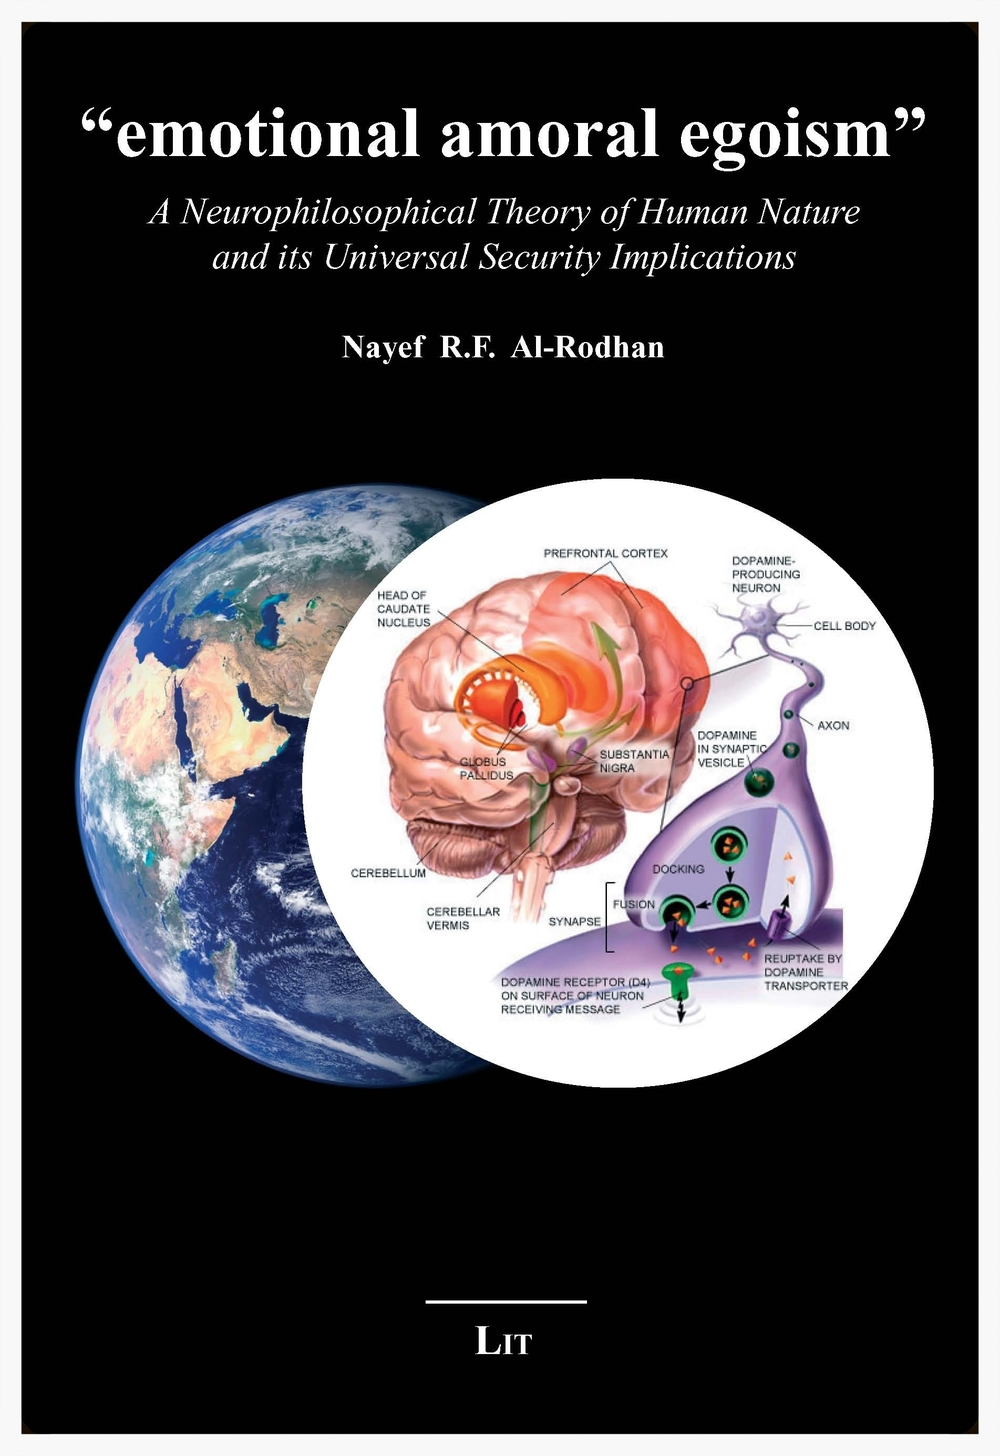 """Copy of """"EMOTIONAL AMORAL EGOISM"""": A Neurophilosophical Theory of Human Nature and its Universal Security Implications"""